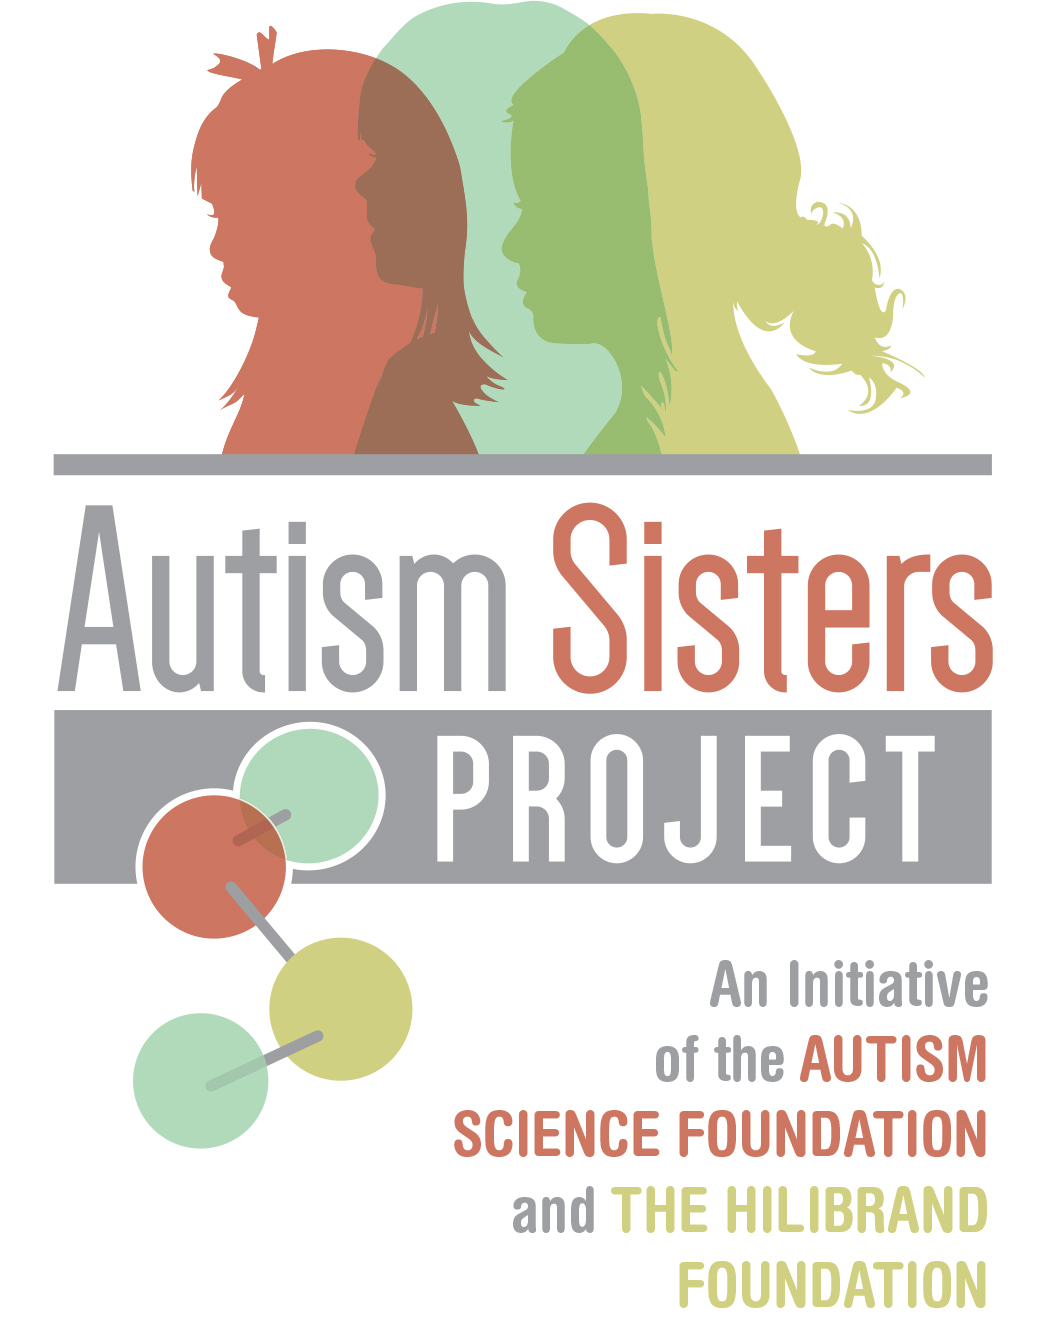 ASF_AutismSistersProject_Logos